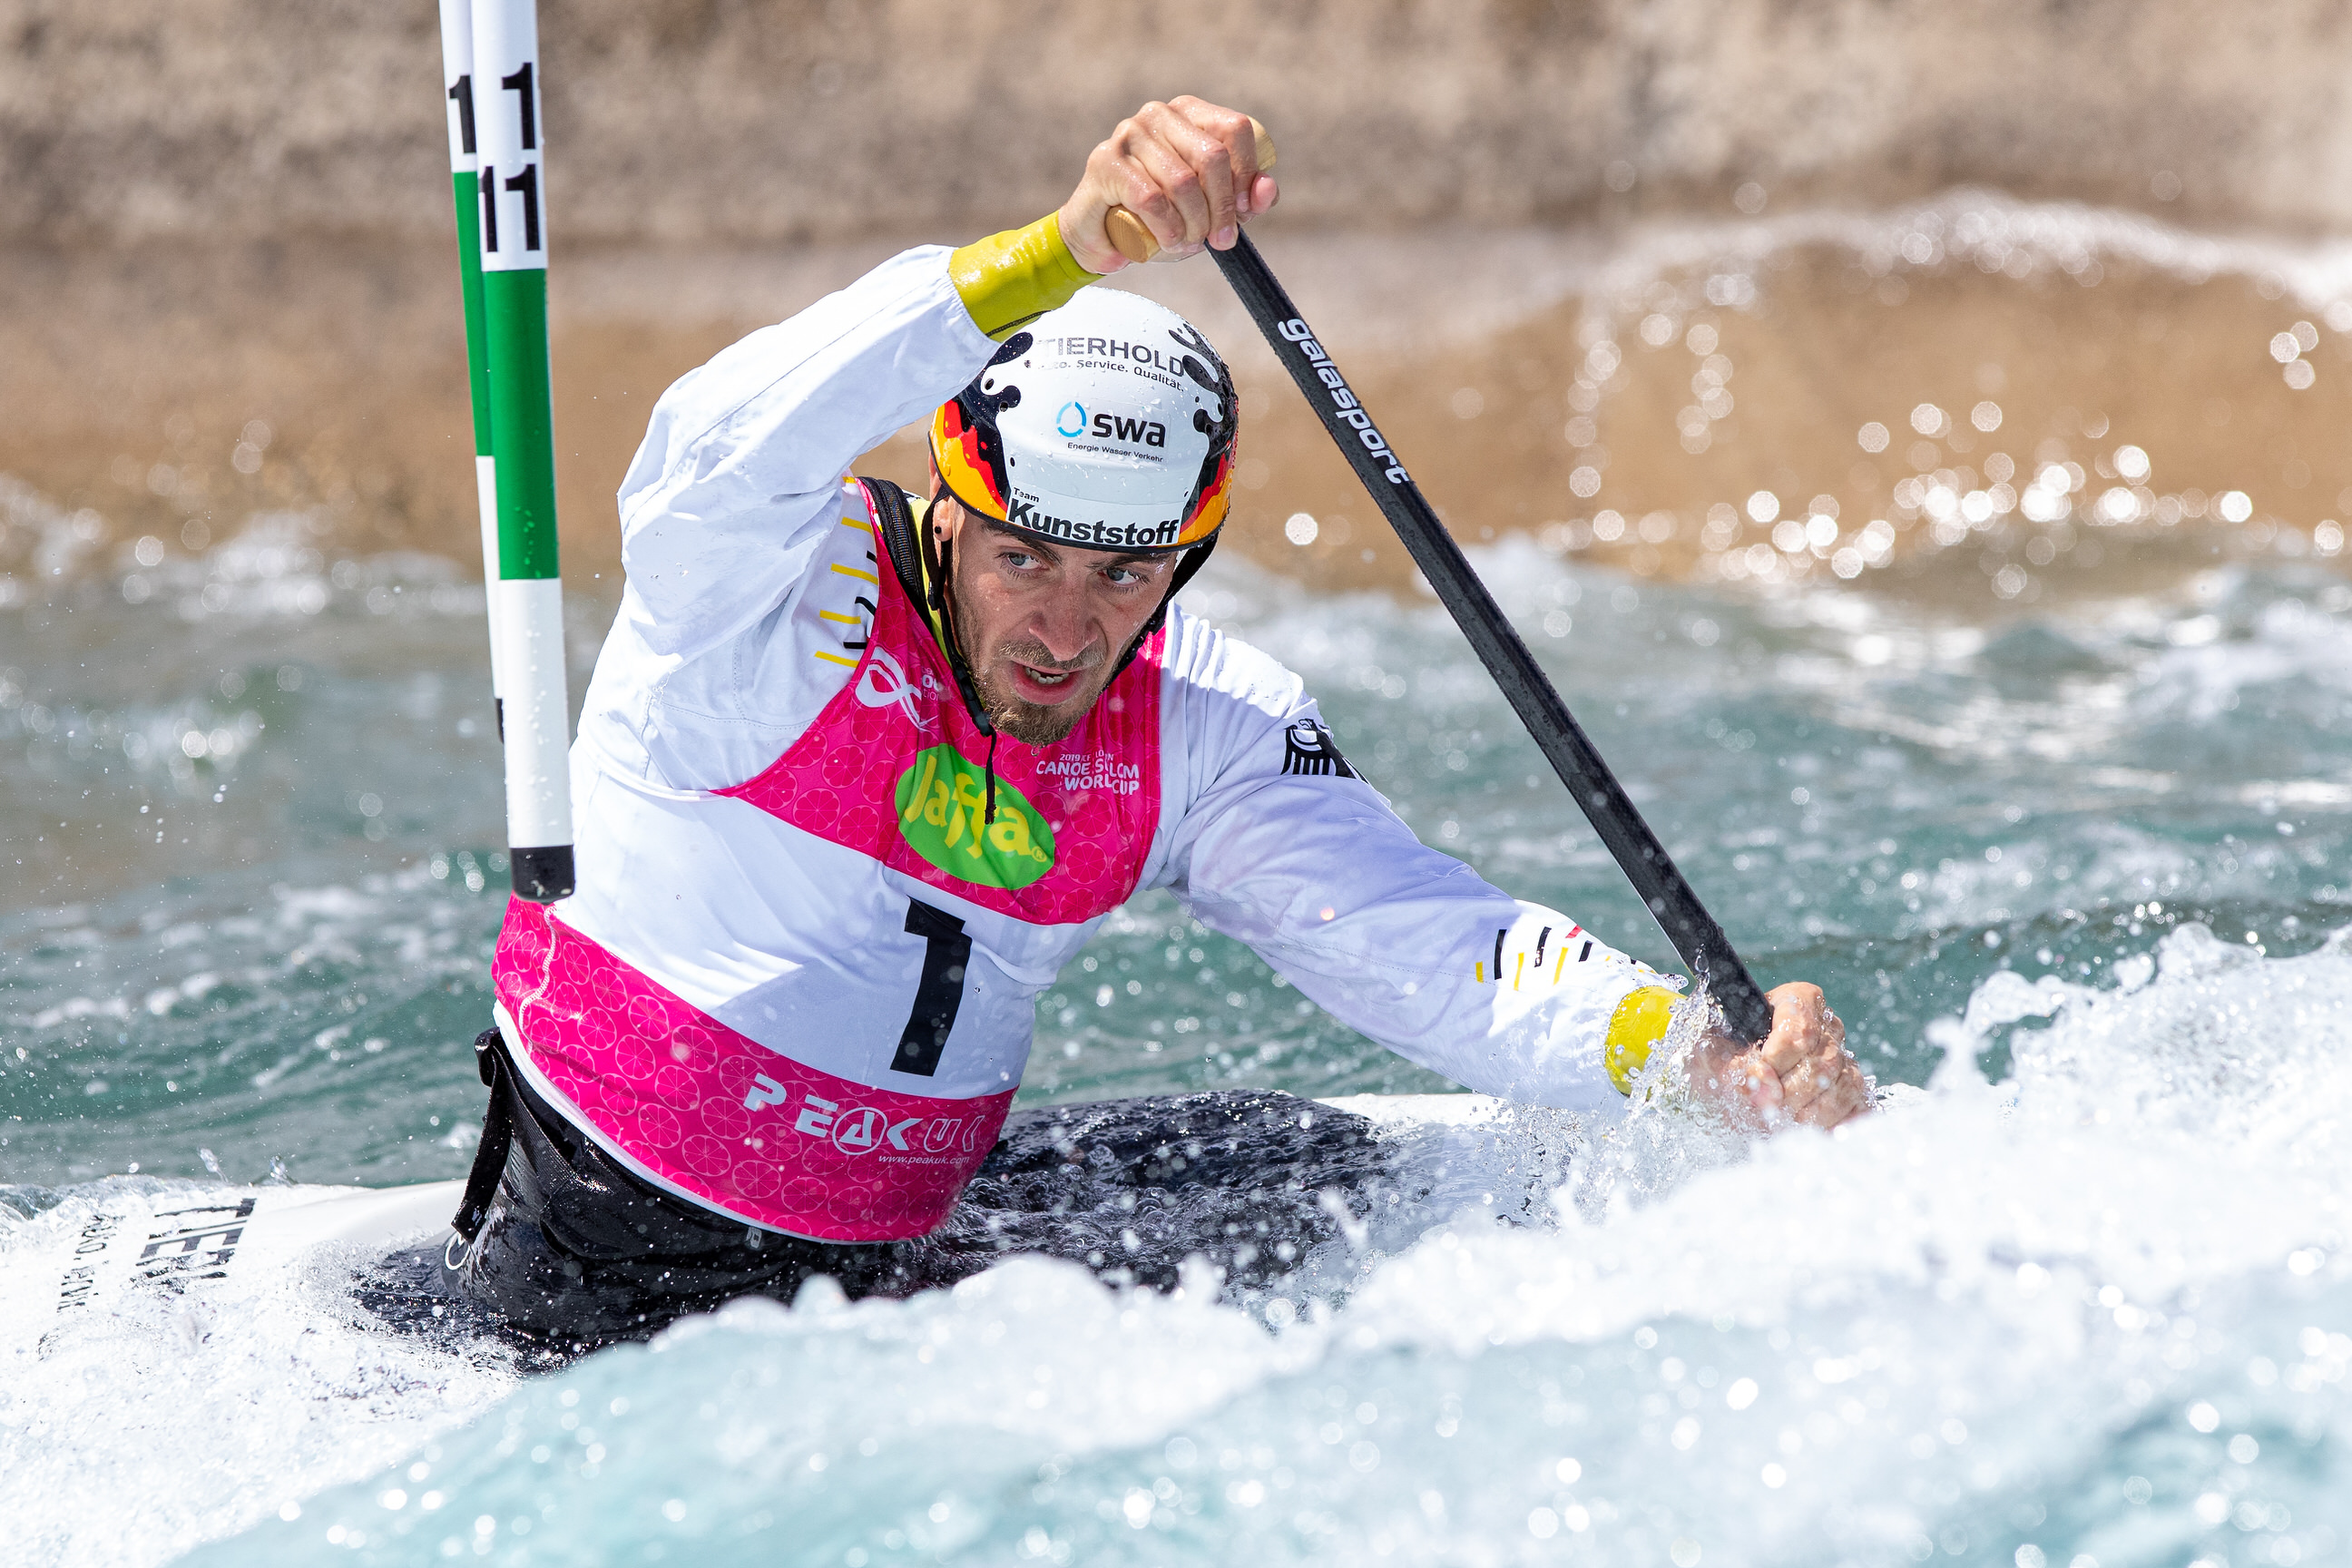 Sideris Tasiadis London Canoe Slalom